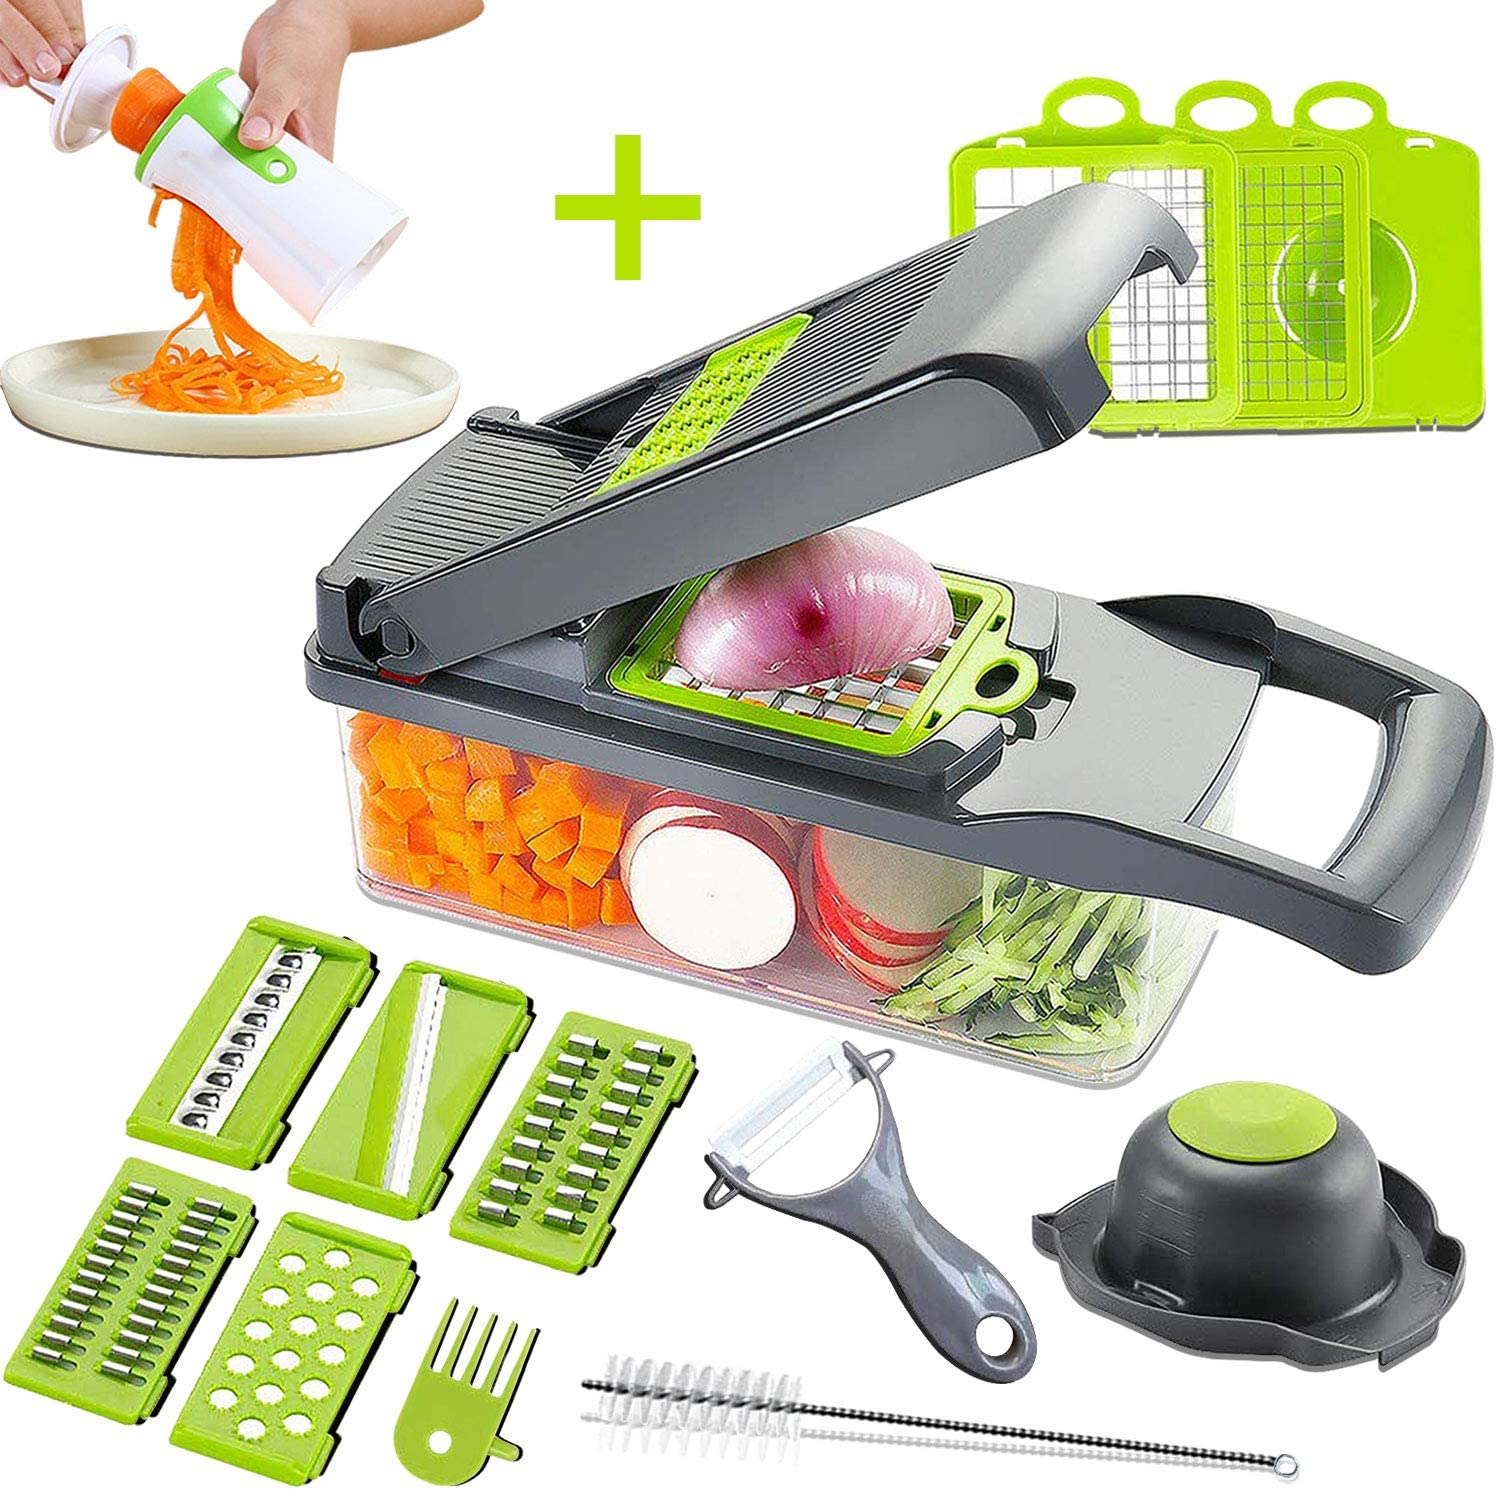 Mandoline Slicer Adjustable Cheese Slicer,Vegetable Chopper Hand Spiralizer,Potato Spiral Cutter Garlic Onion Dicer Fruit Peeler,Veggie Slicer,Pasta Zucchini Noodle Maker,Salad Shooter,Food Processor